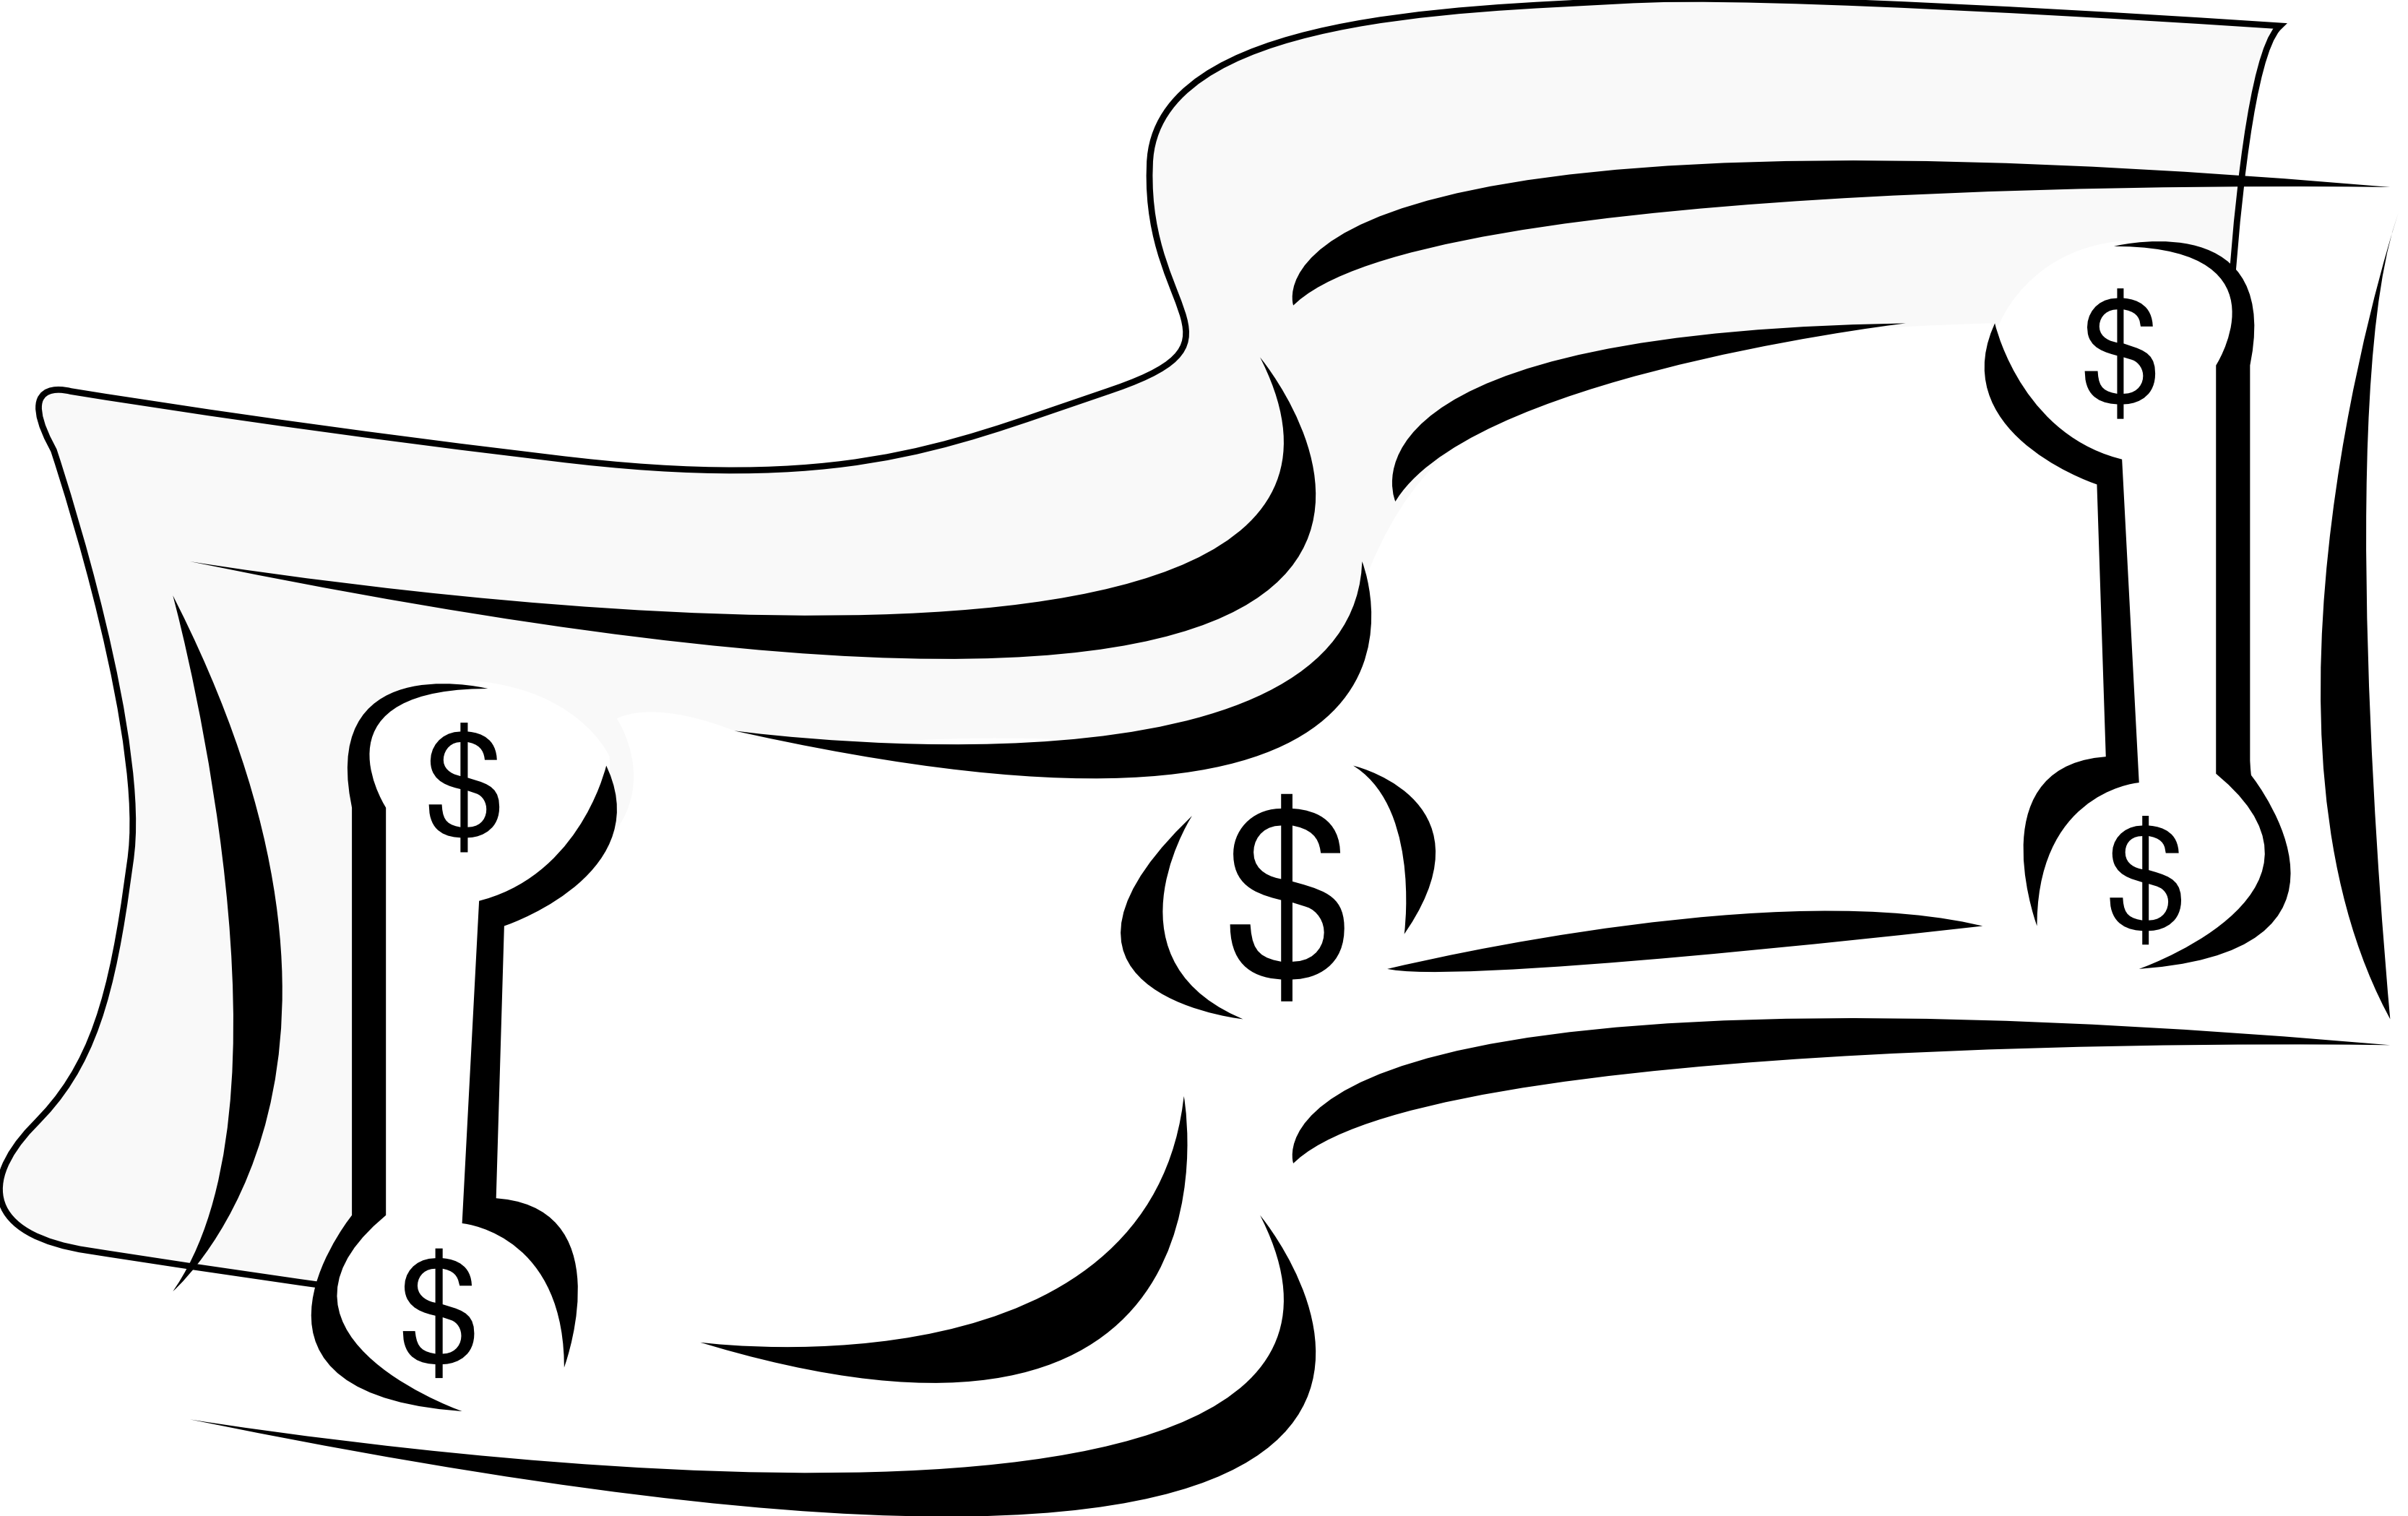 Dollar sign stylized. Graphic black and clipart